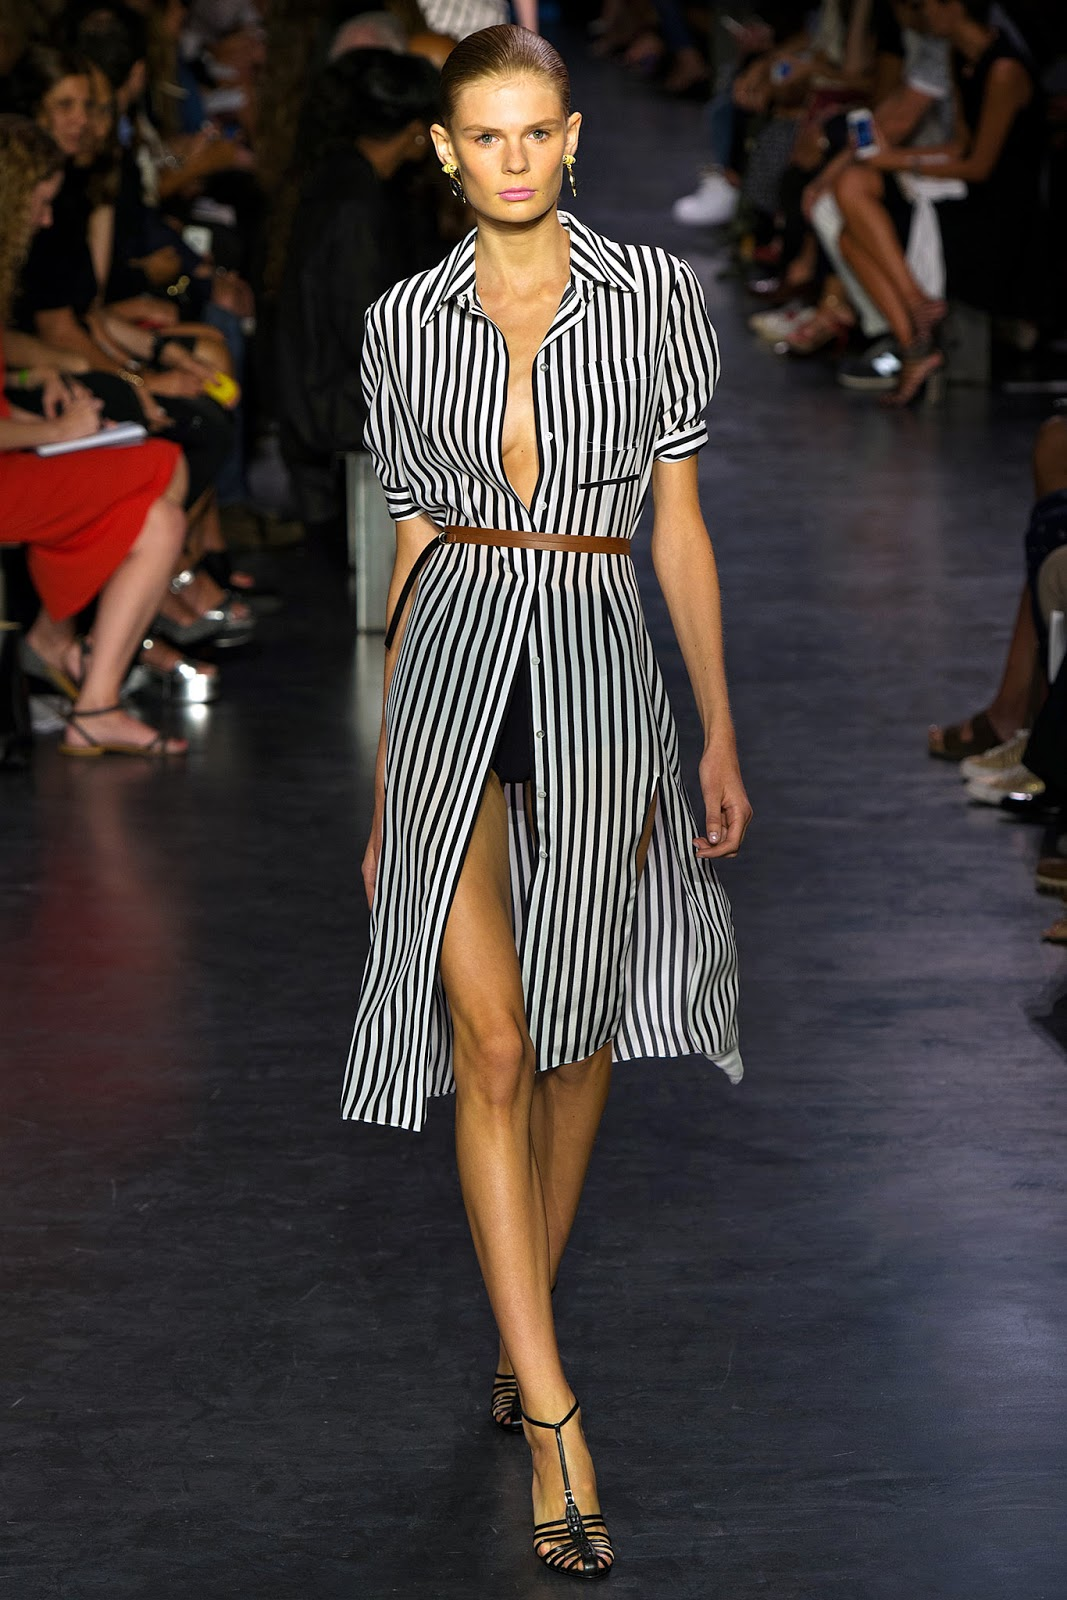 spring/summer 2015 trends / shirtdress / history of shirt dress / altuzarra spring 2015 / via fashioned by love british fashion blog